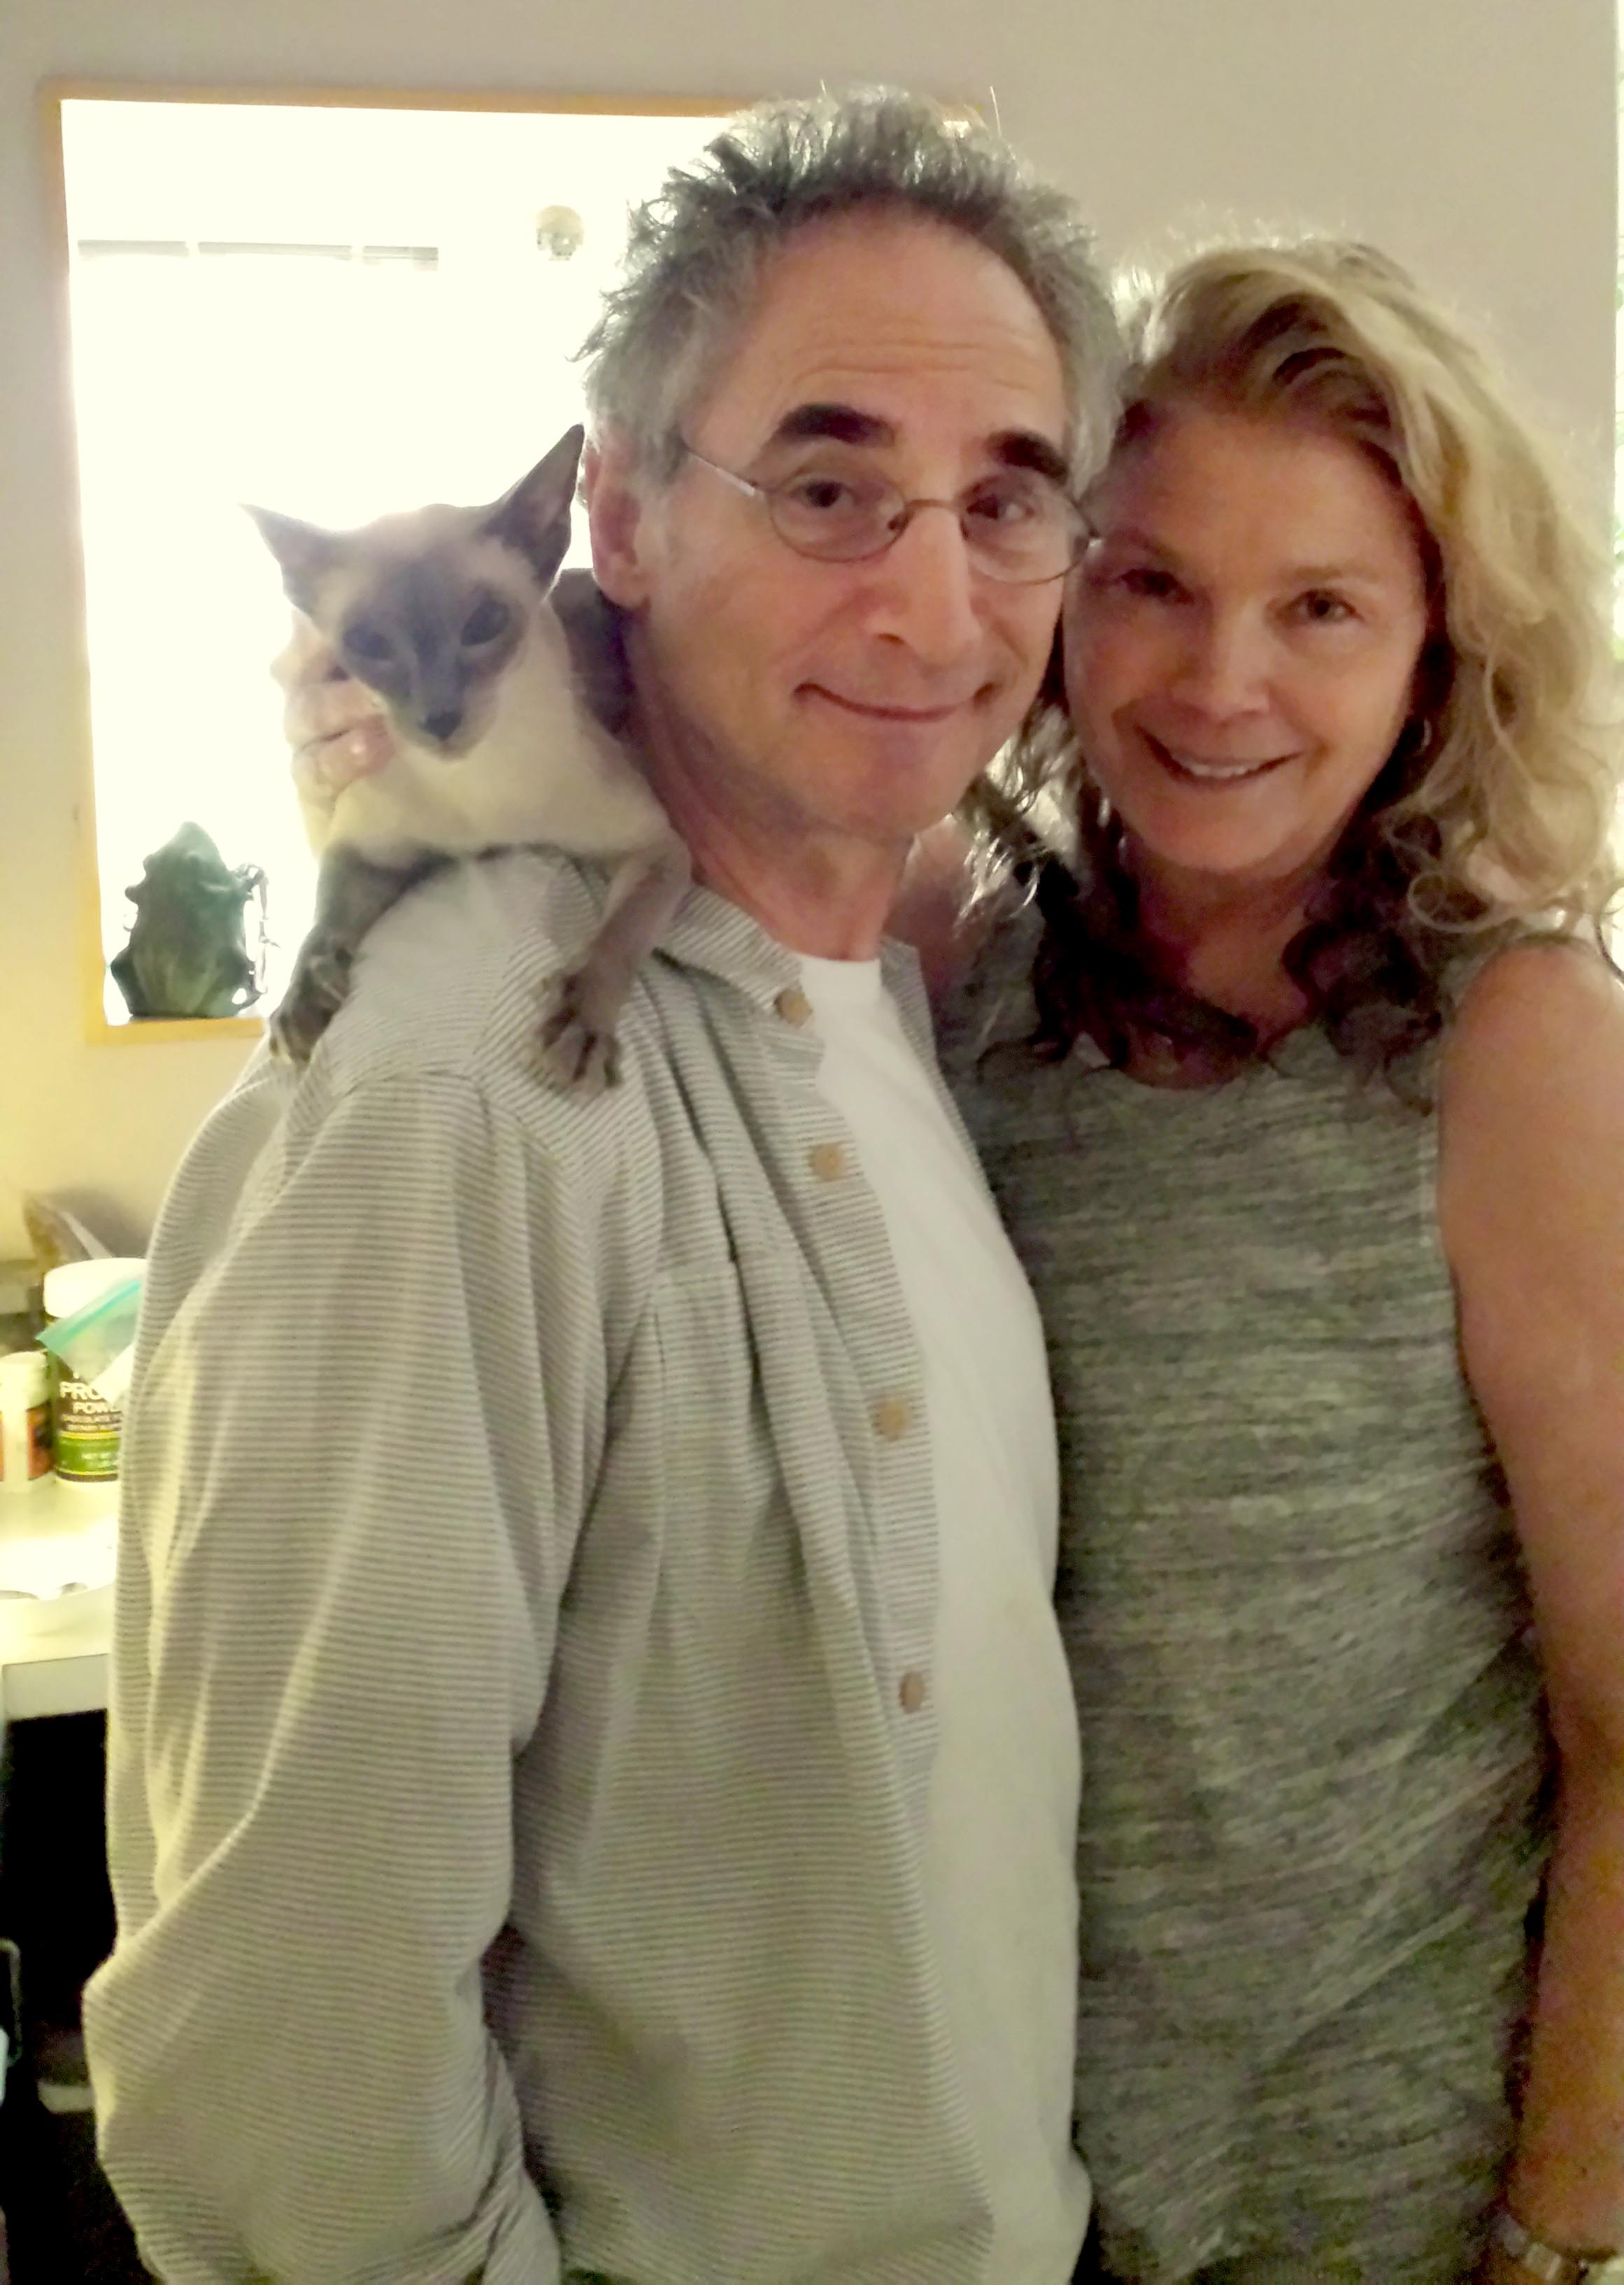 With Rebecca Nelson and Miko.